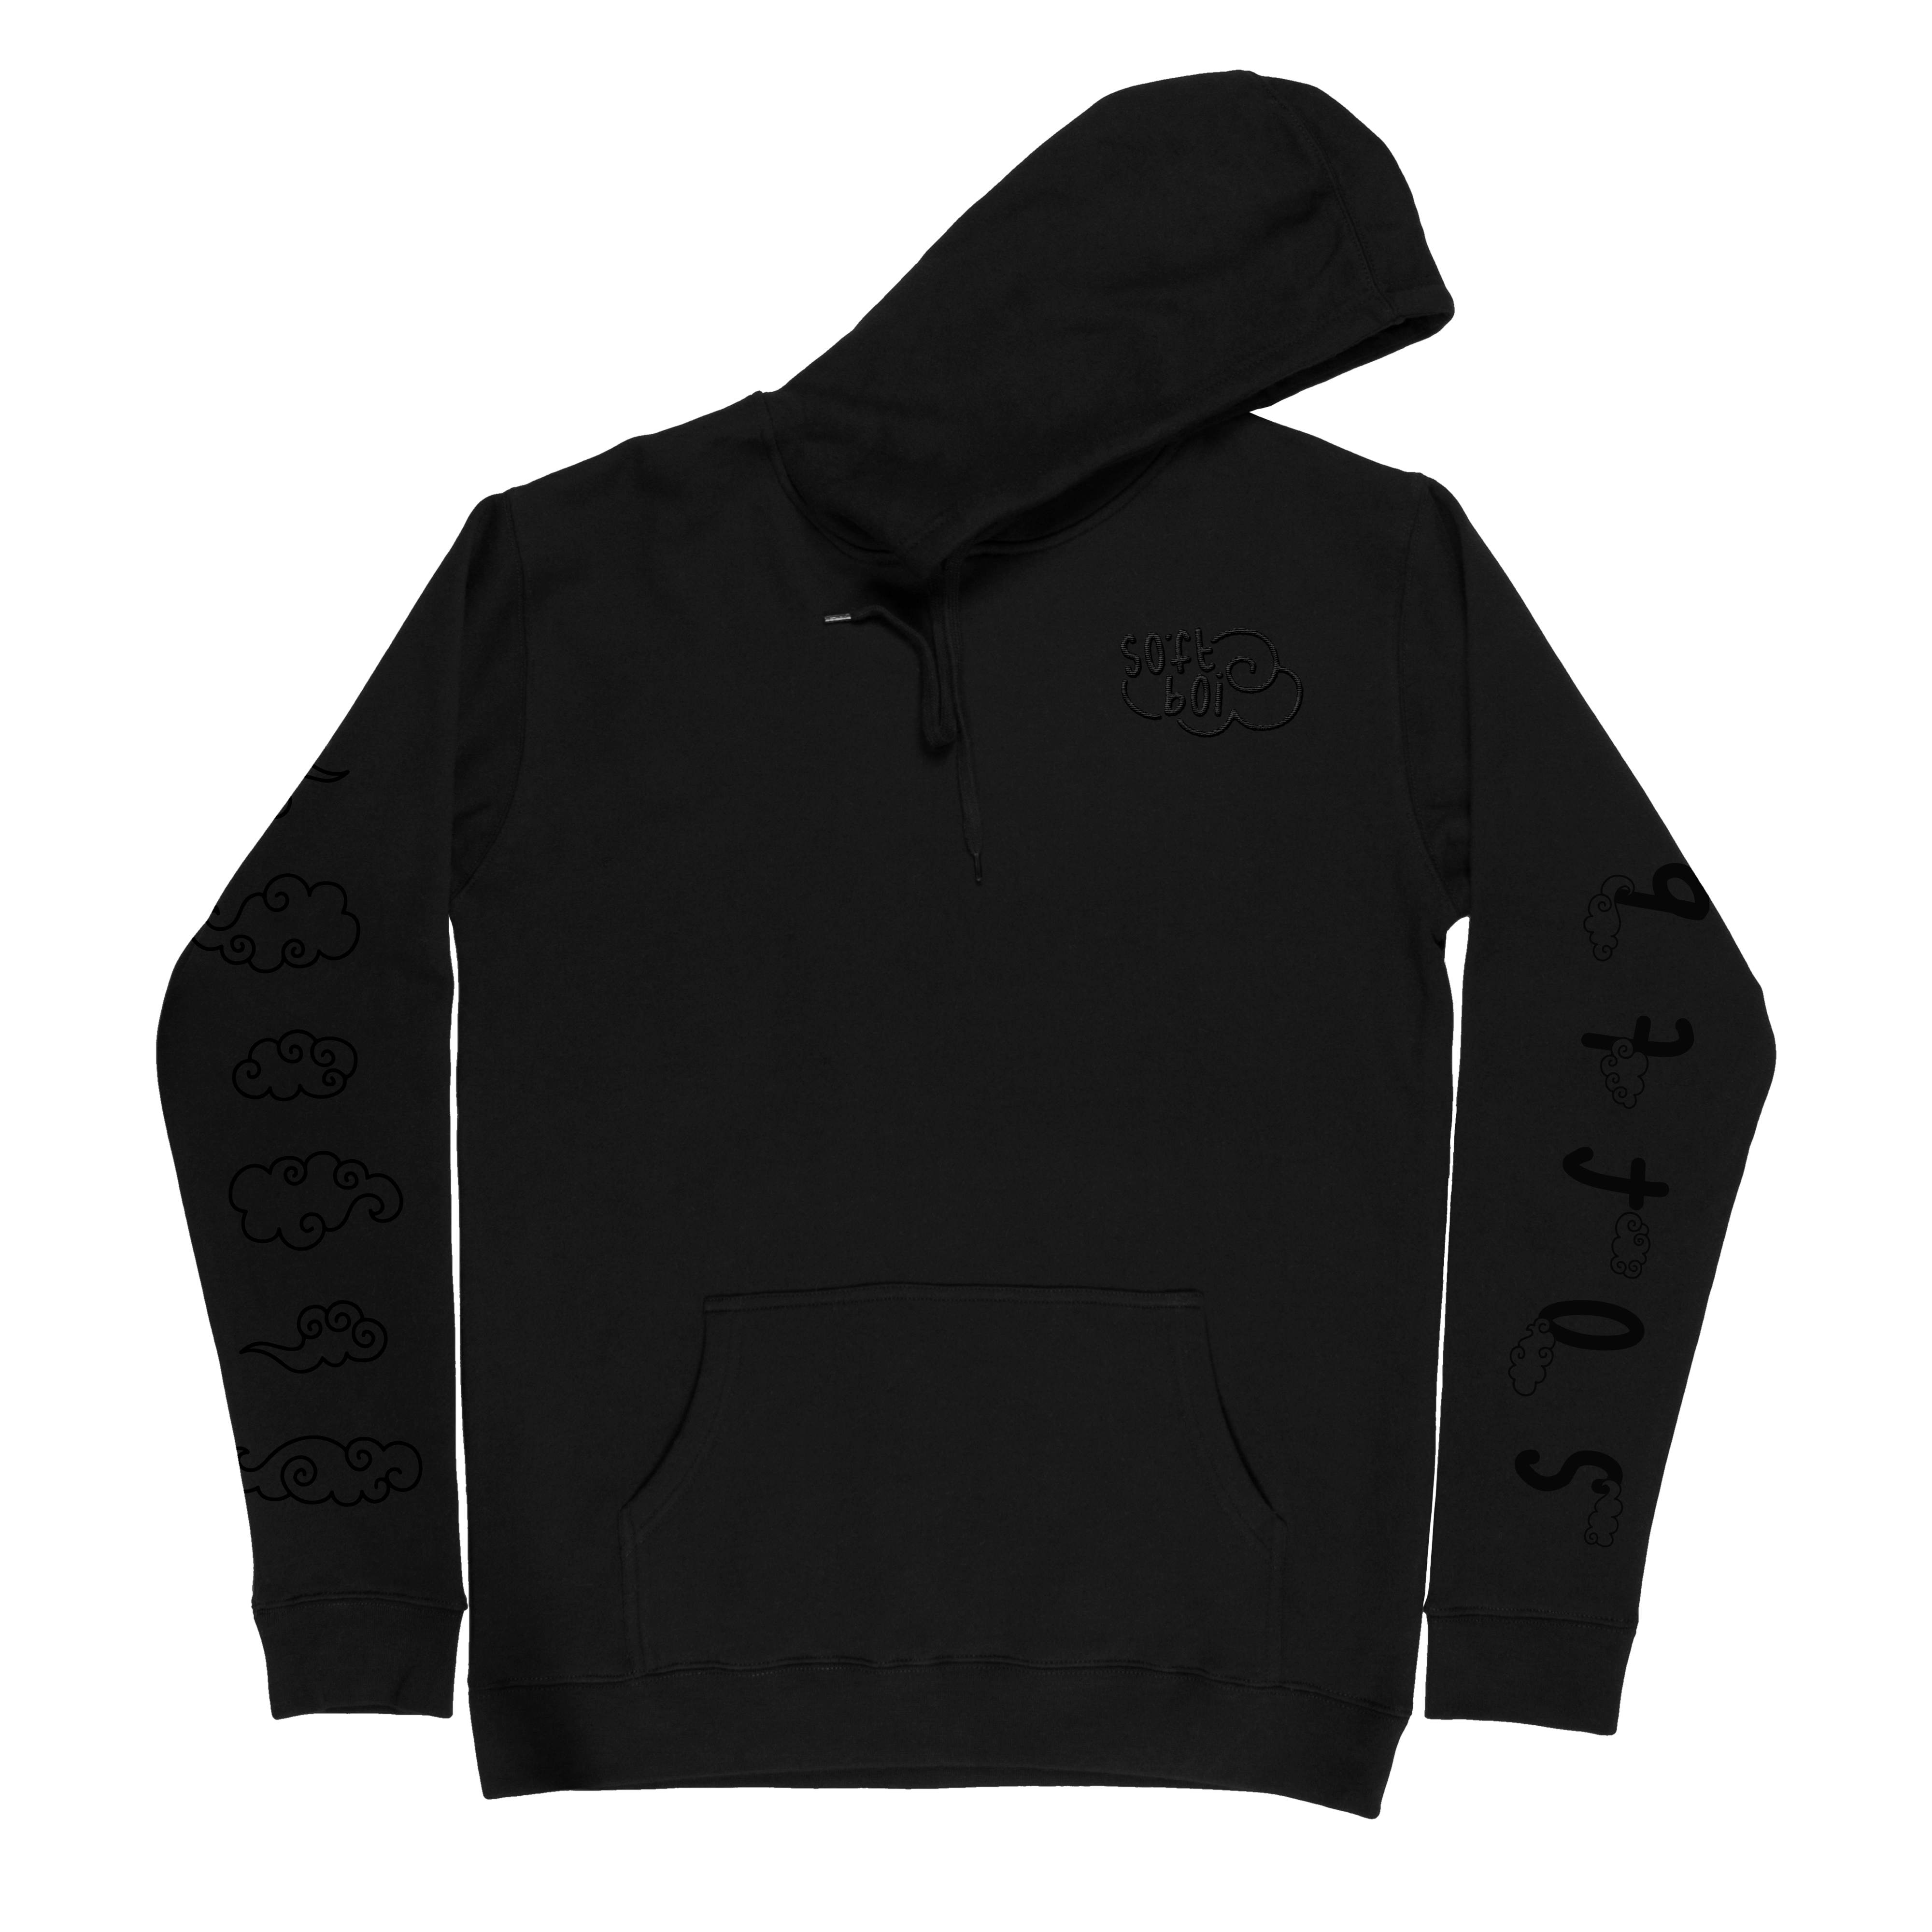 Black Out Soft Boi Hoodie